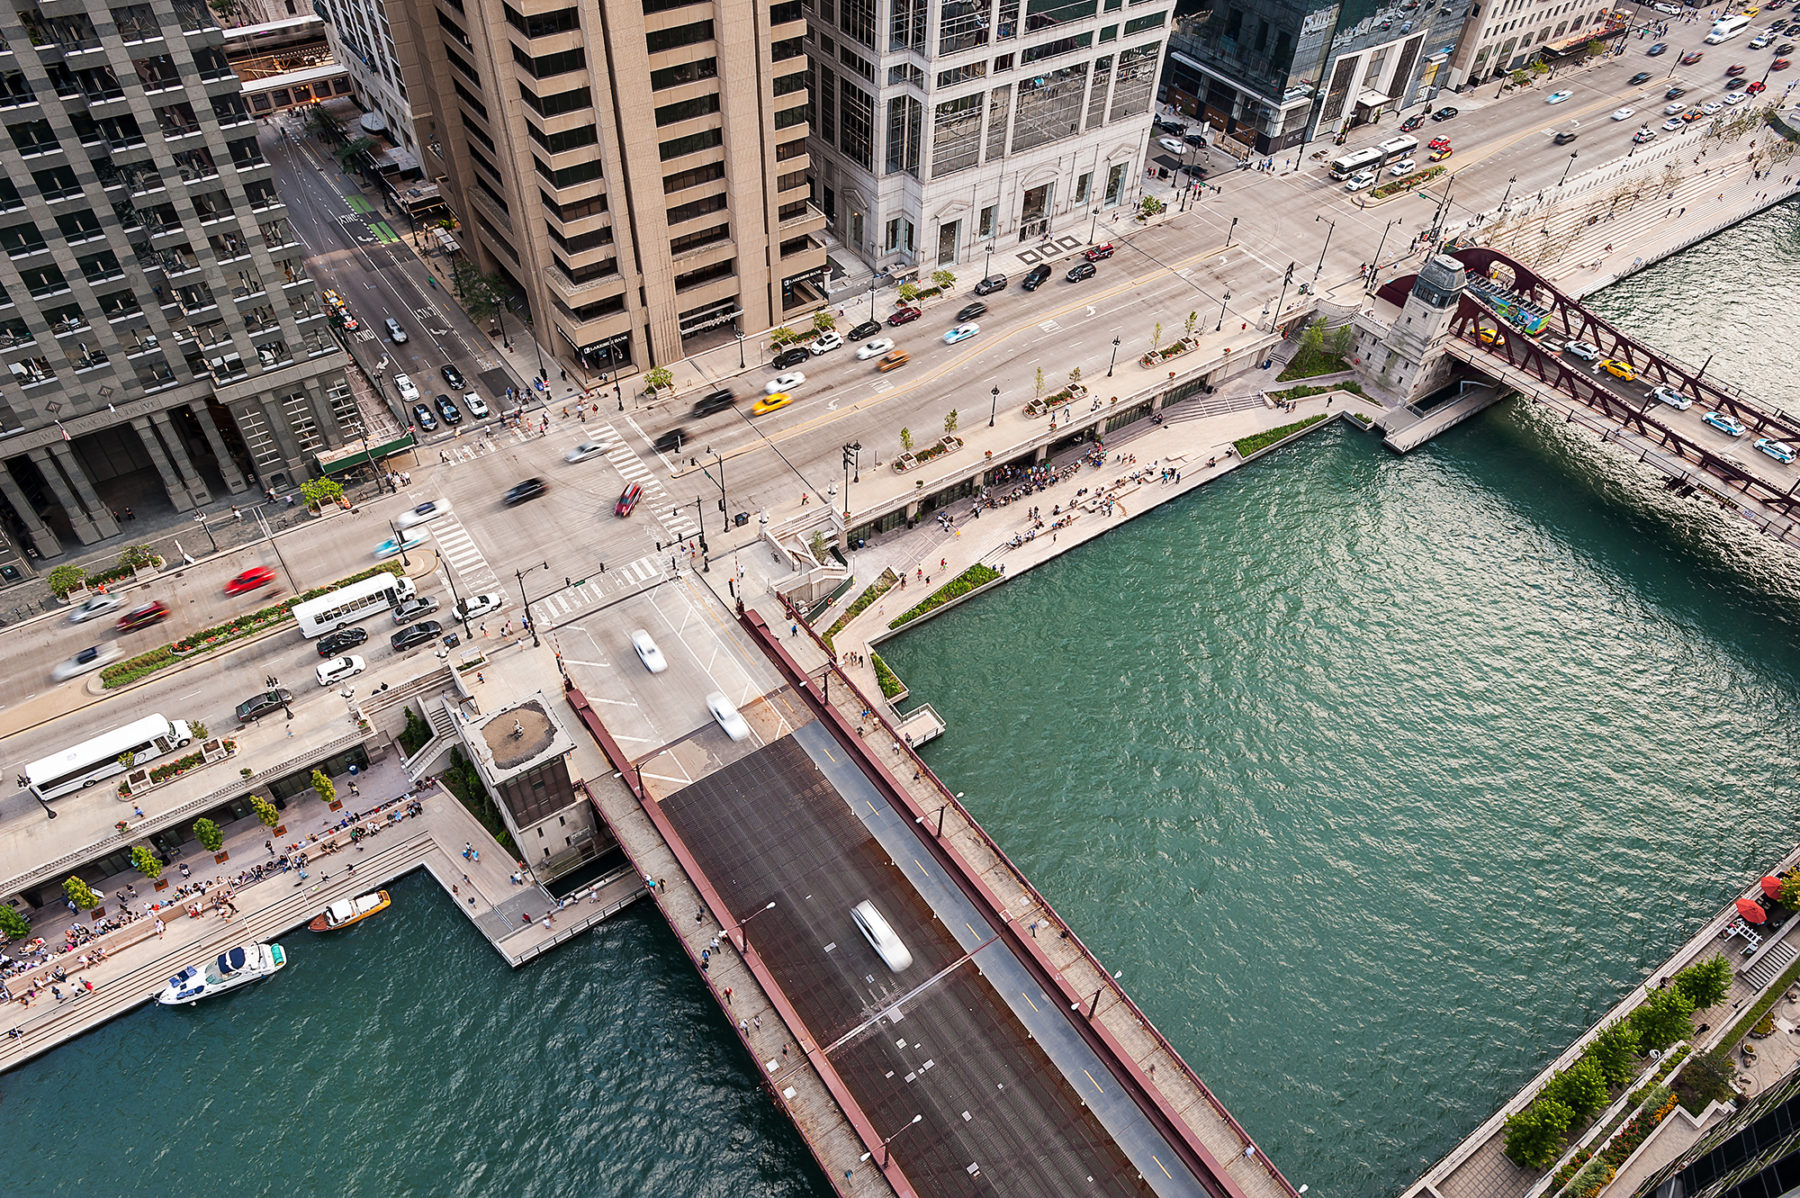 Image of chicago riverwalk from overhead